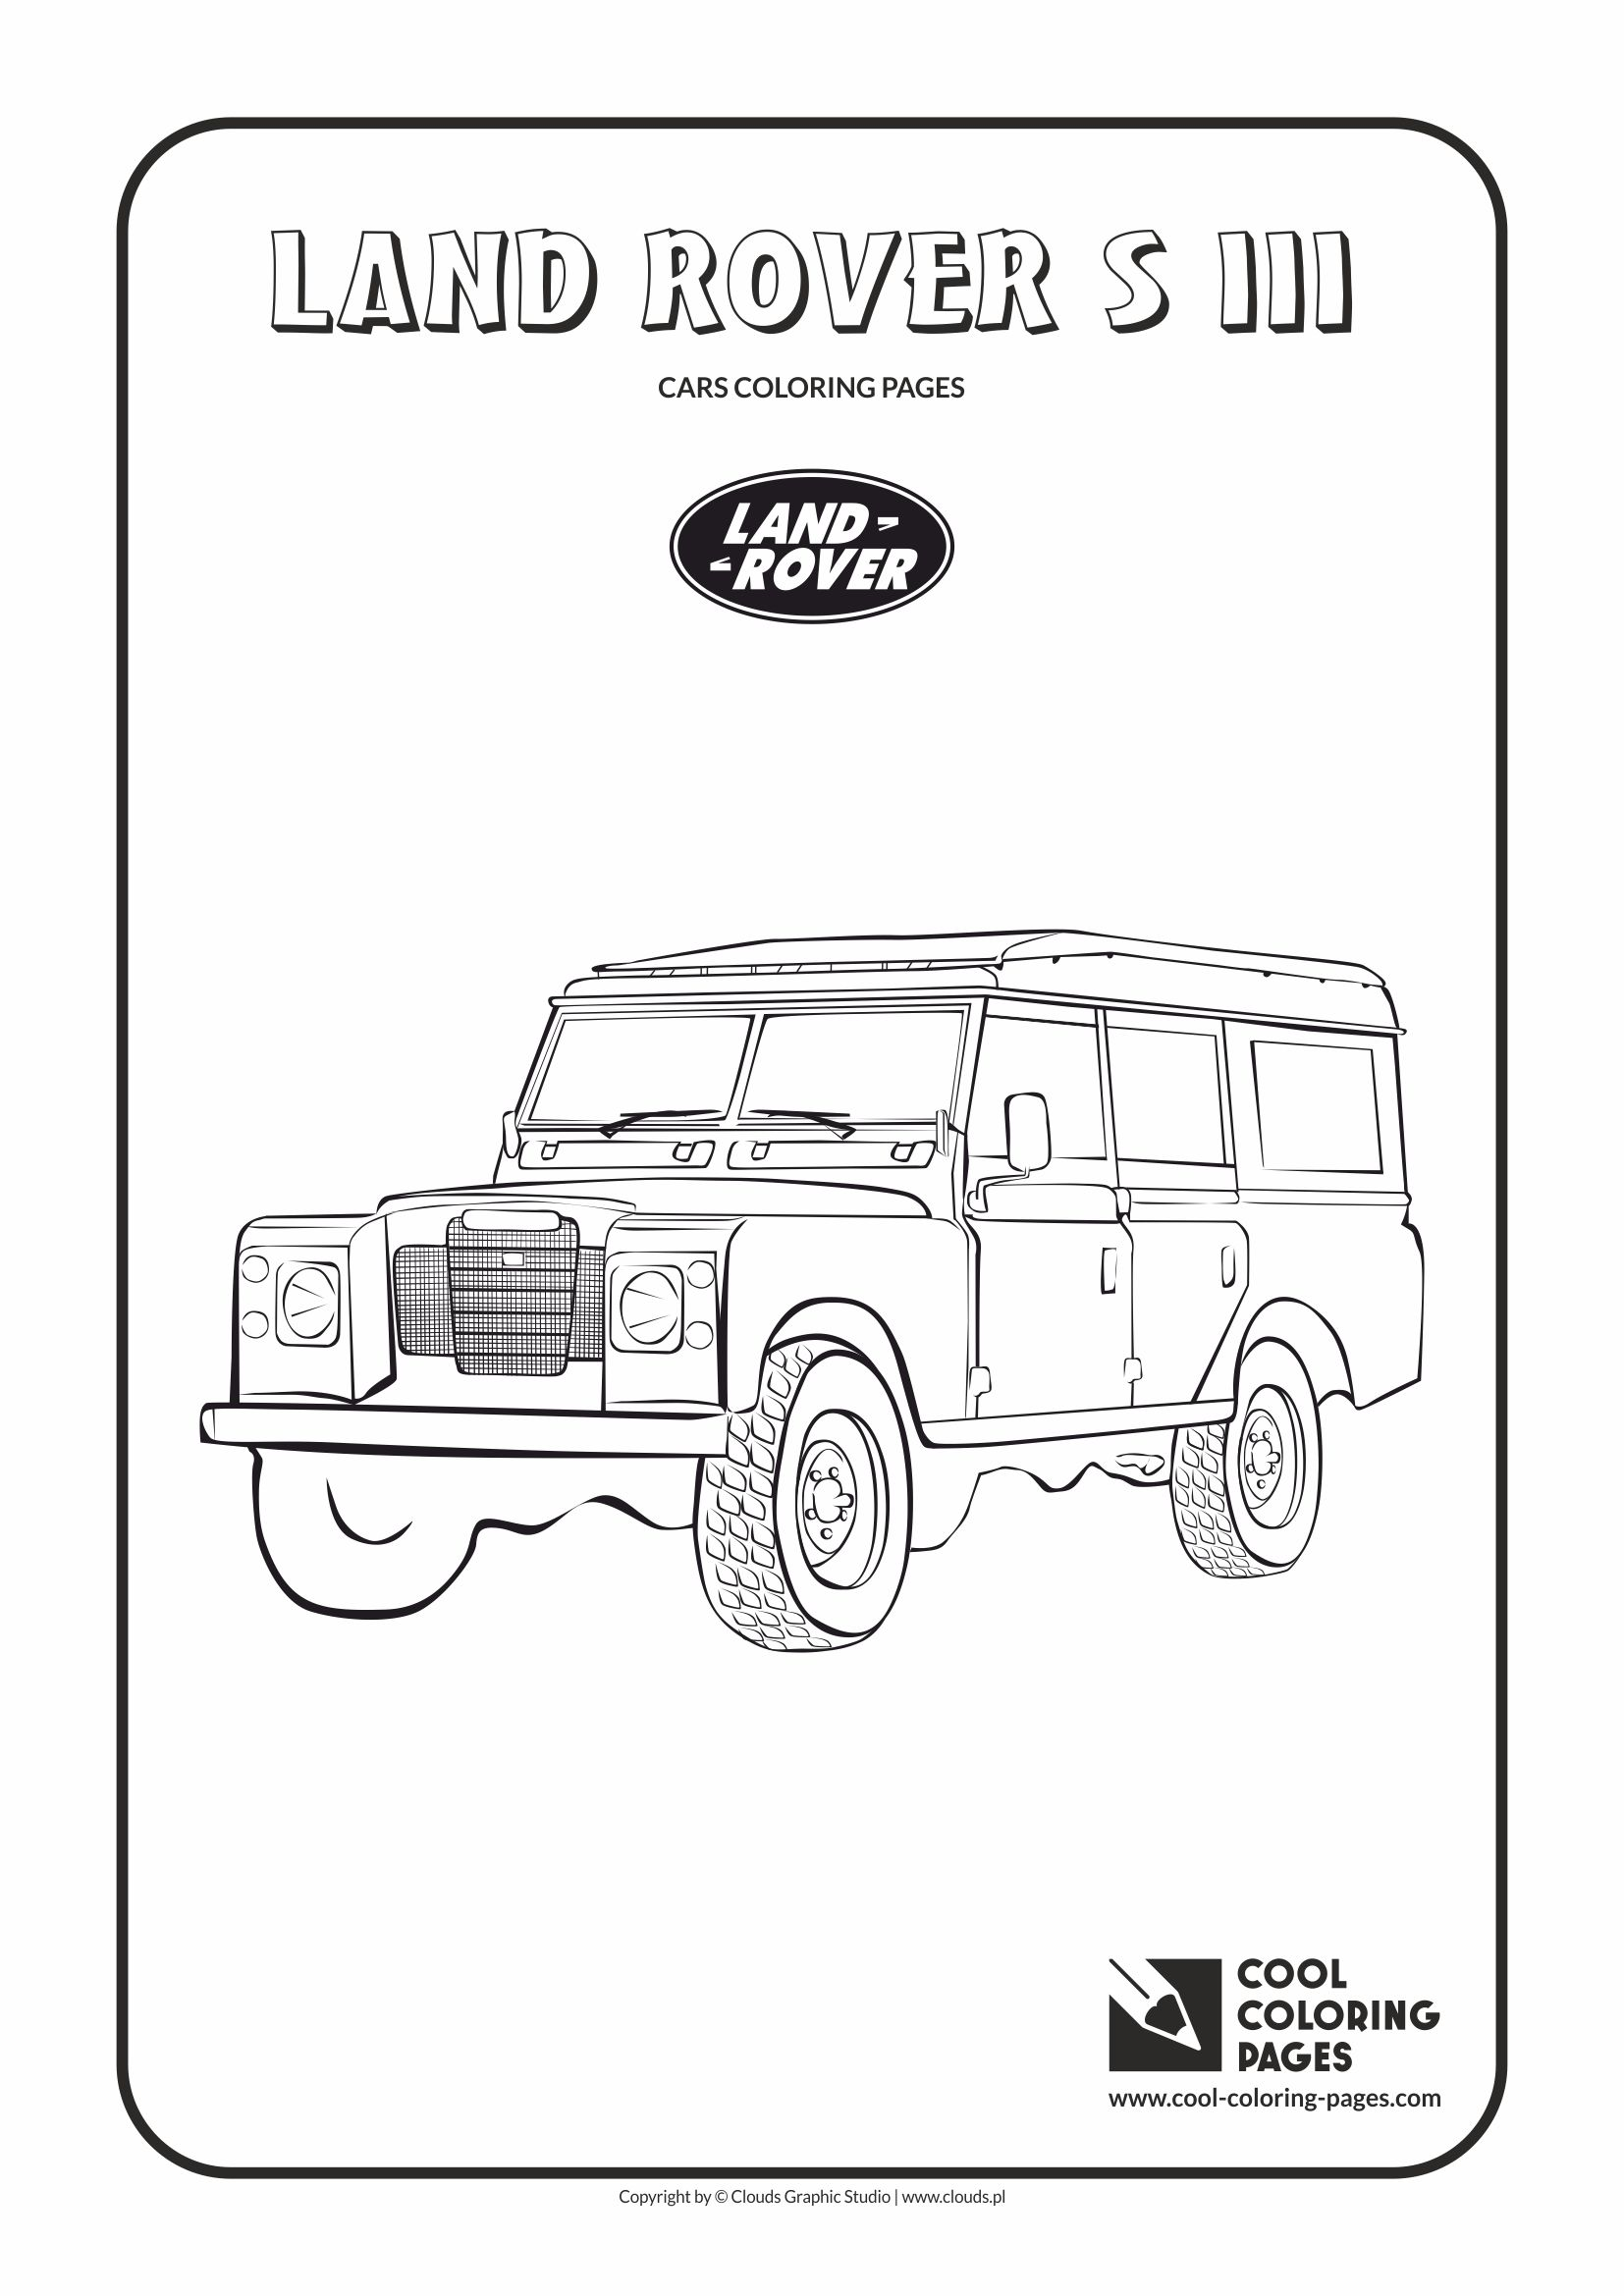 Cool Coloring Pages Land Rover S Iii Coloring Page